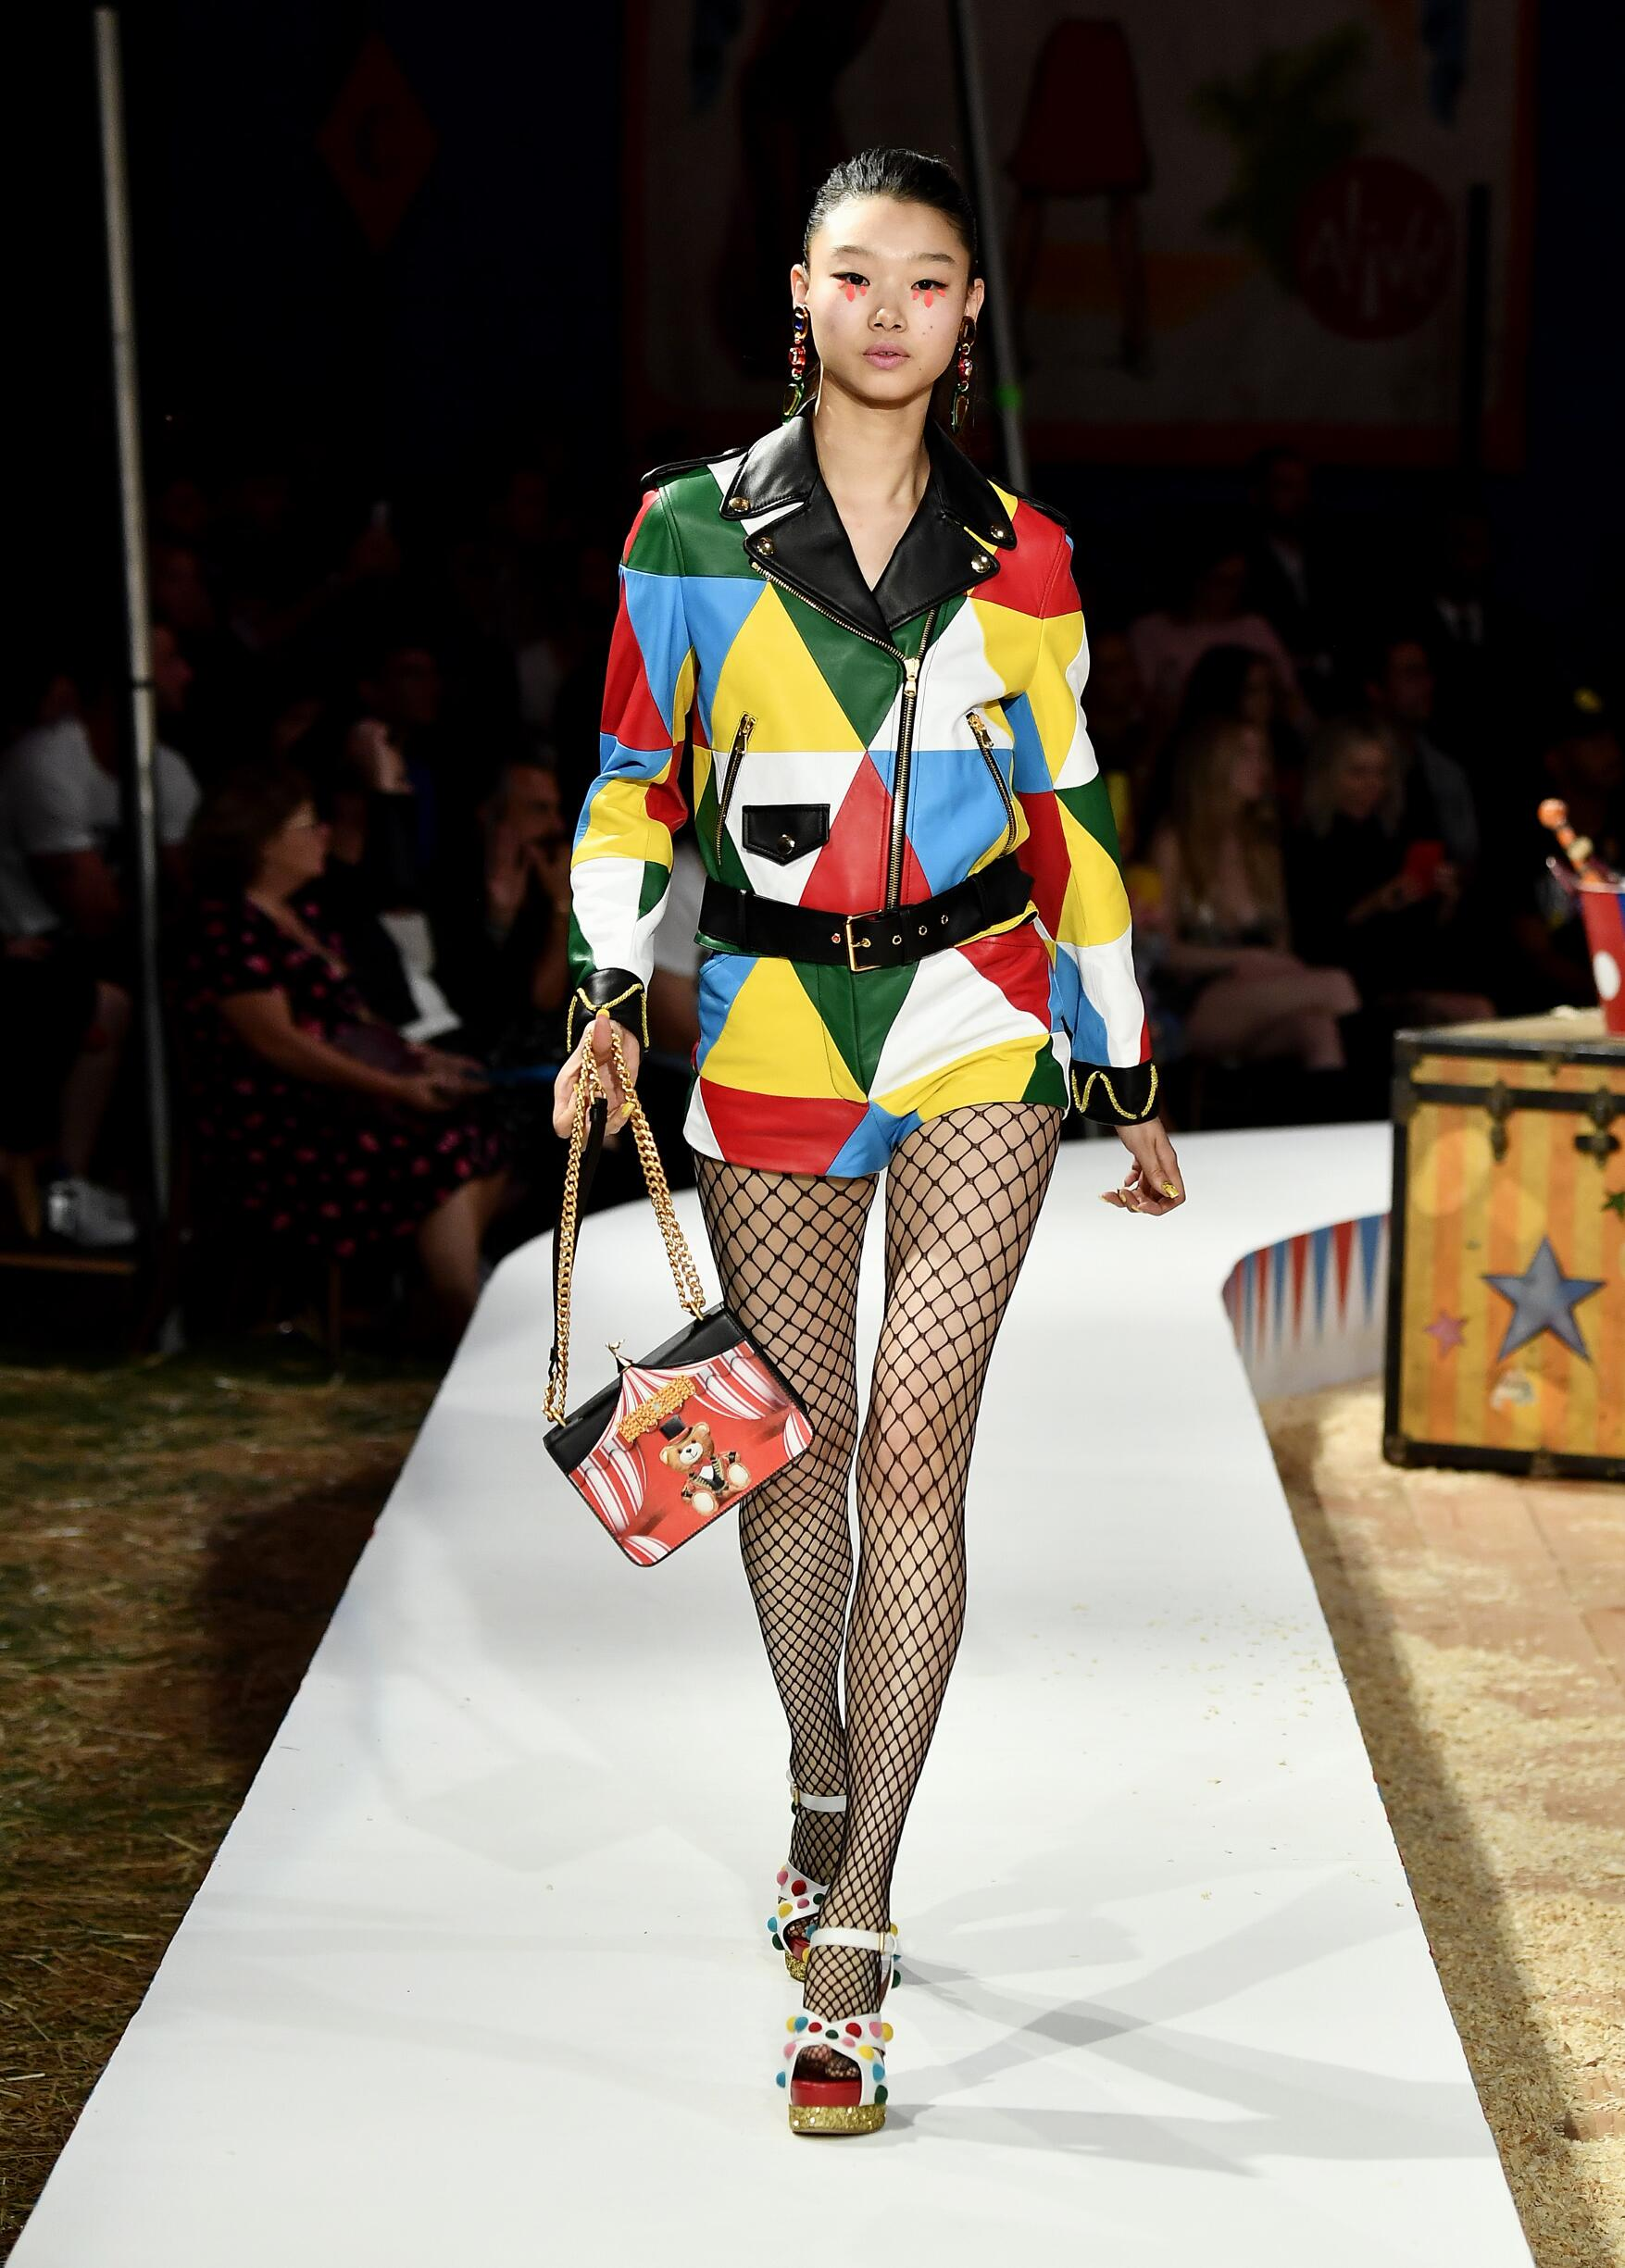 Moschino Spring Summer 2019 Menswear and Women's Resort Collection Look 72 Los Angeles